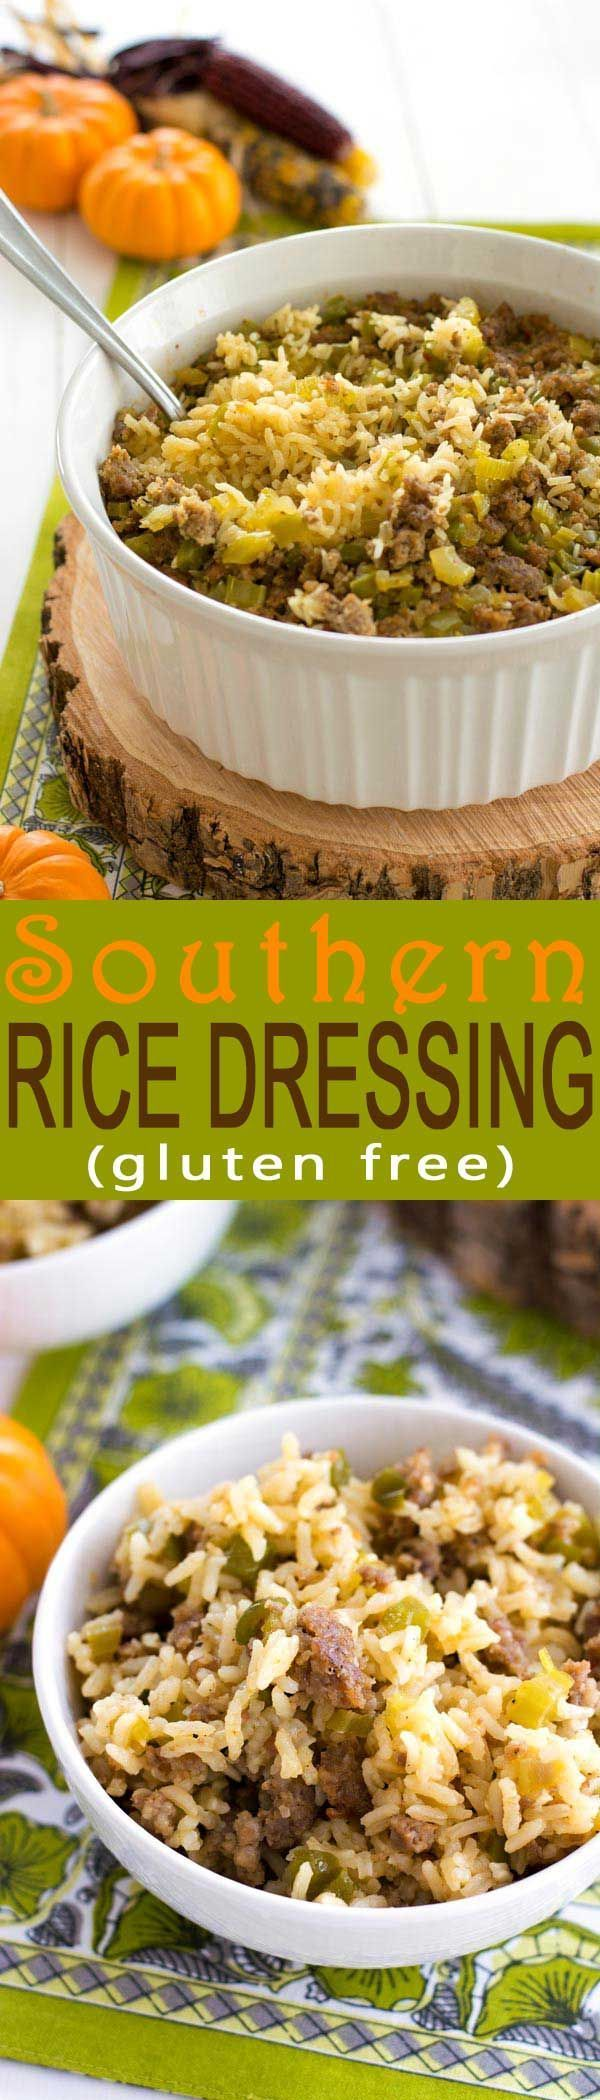 Try this easy rice dressing recipe baked with the traditional flavors of bread stuffing. Great stuffing alternative for gluten free diets!